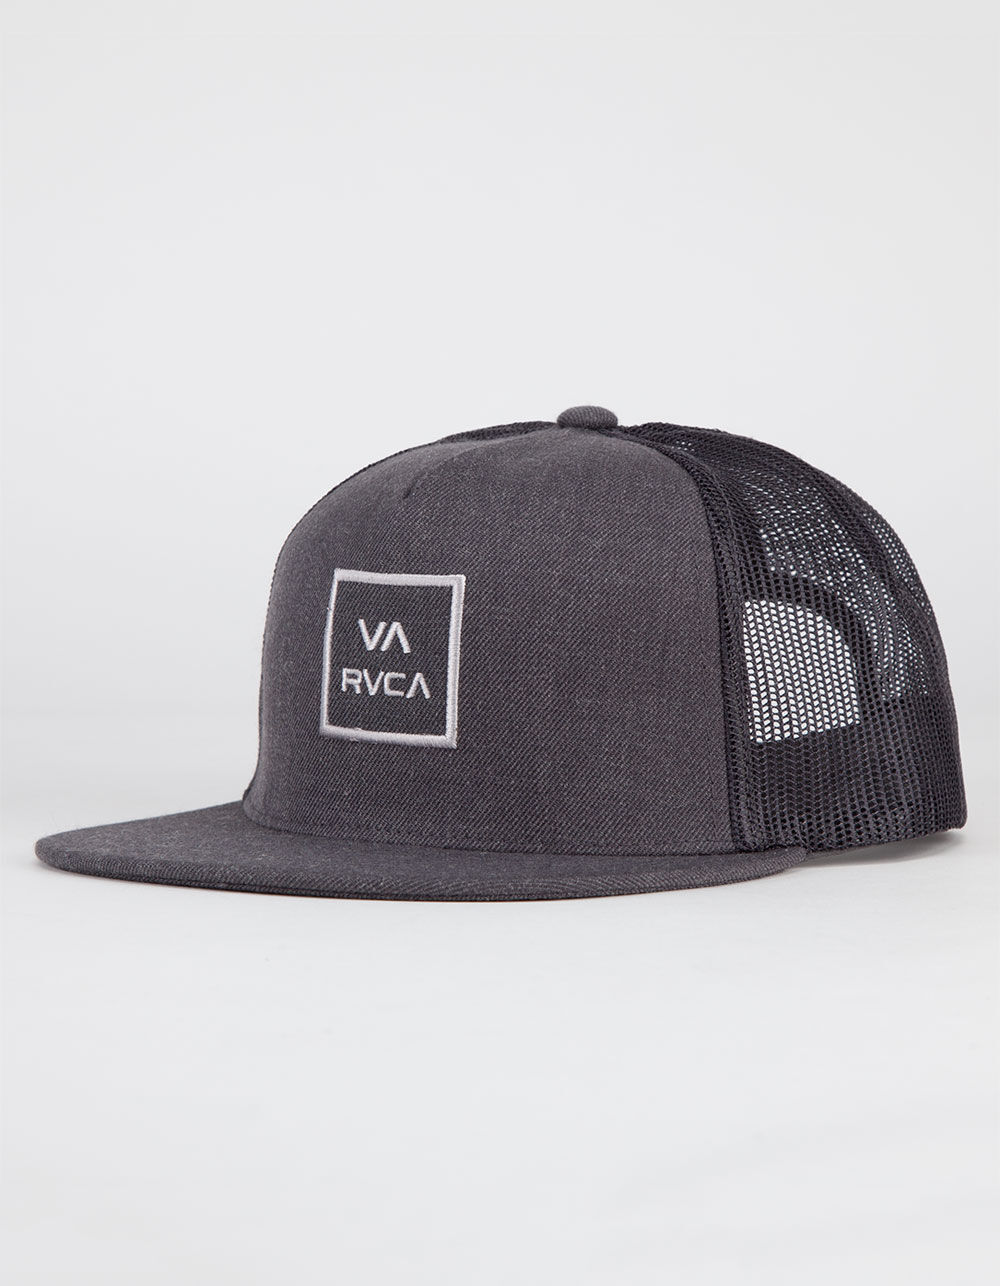 RVCA VA All The Way II Mens Trucker Hat